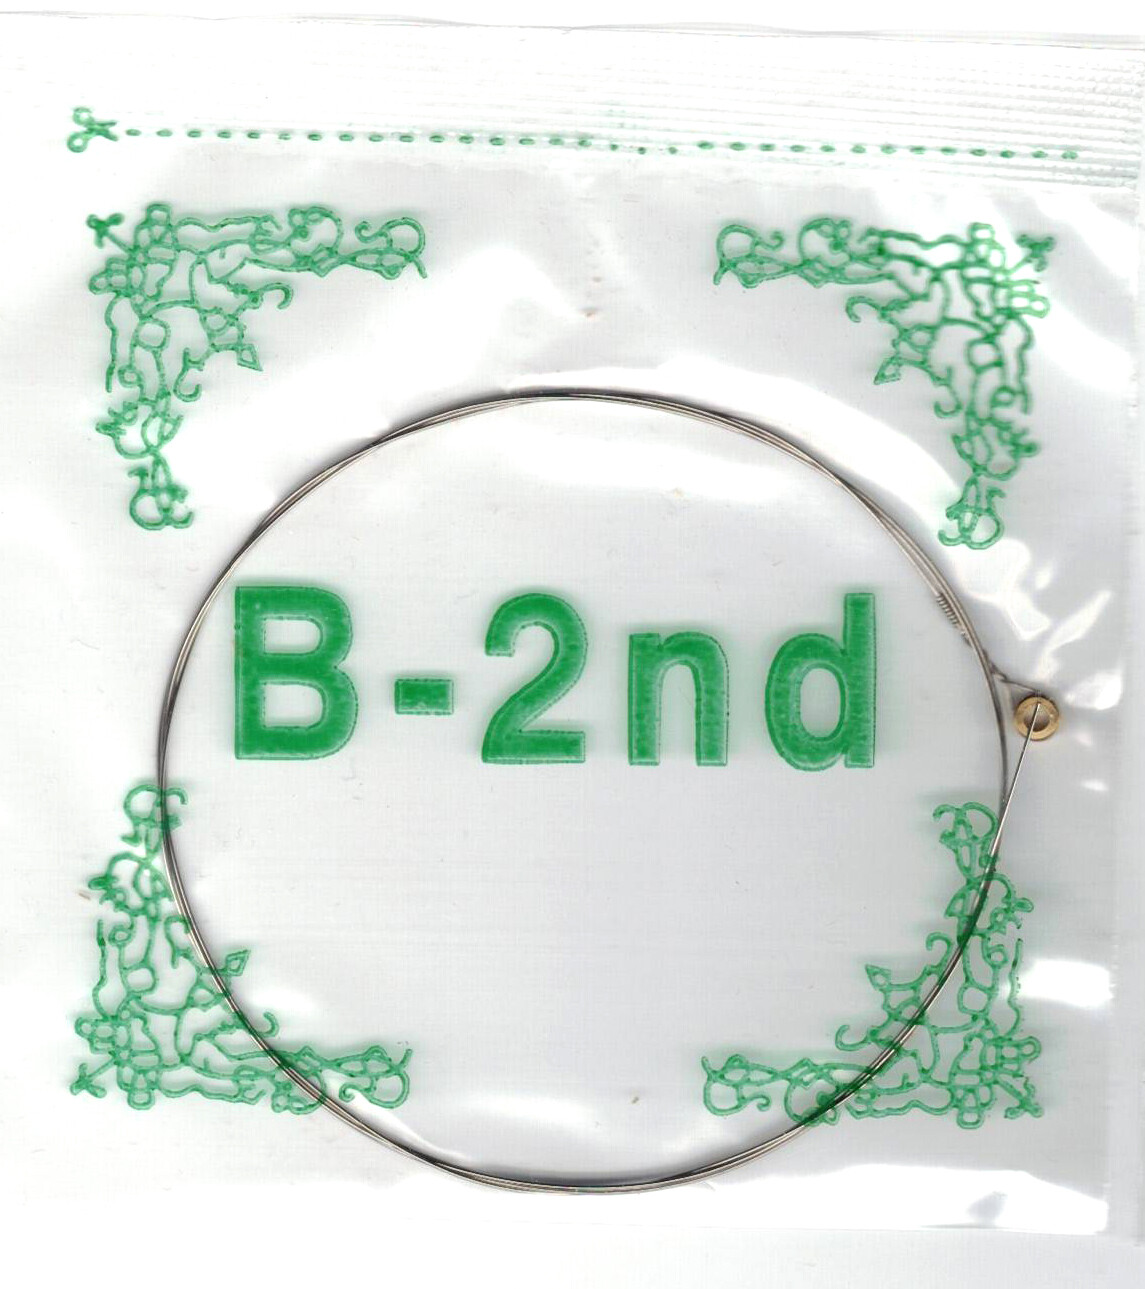 Single Acoustic Guitar String : 2nd string : 5 pcs